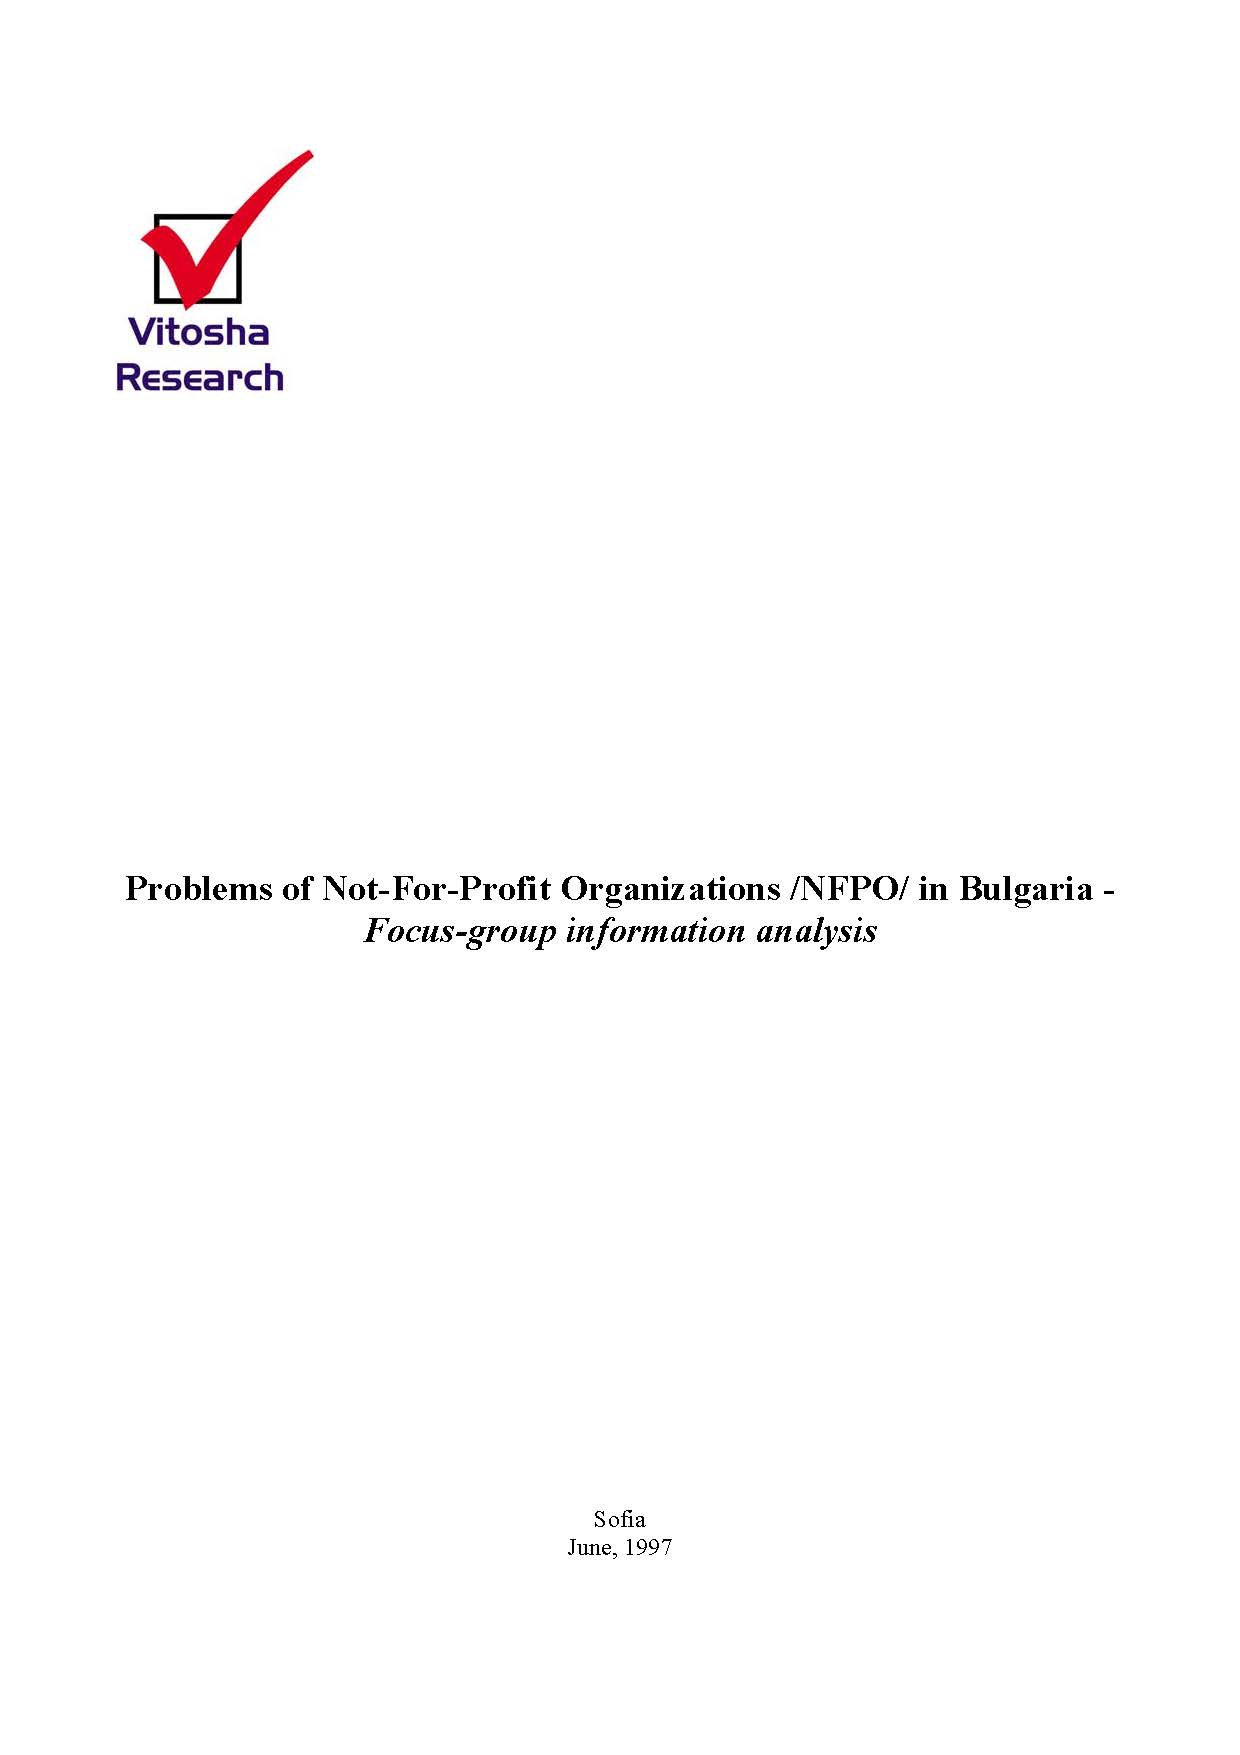 Problems of Not-For-Profit Organizations /NFPO/ in Bulgaria - Focus-group information analysis, June 1997